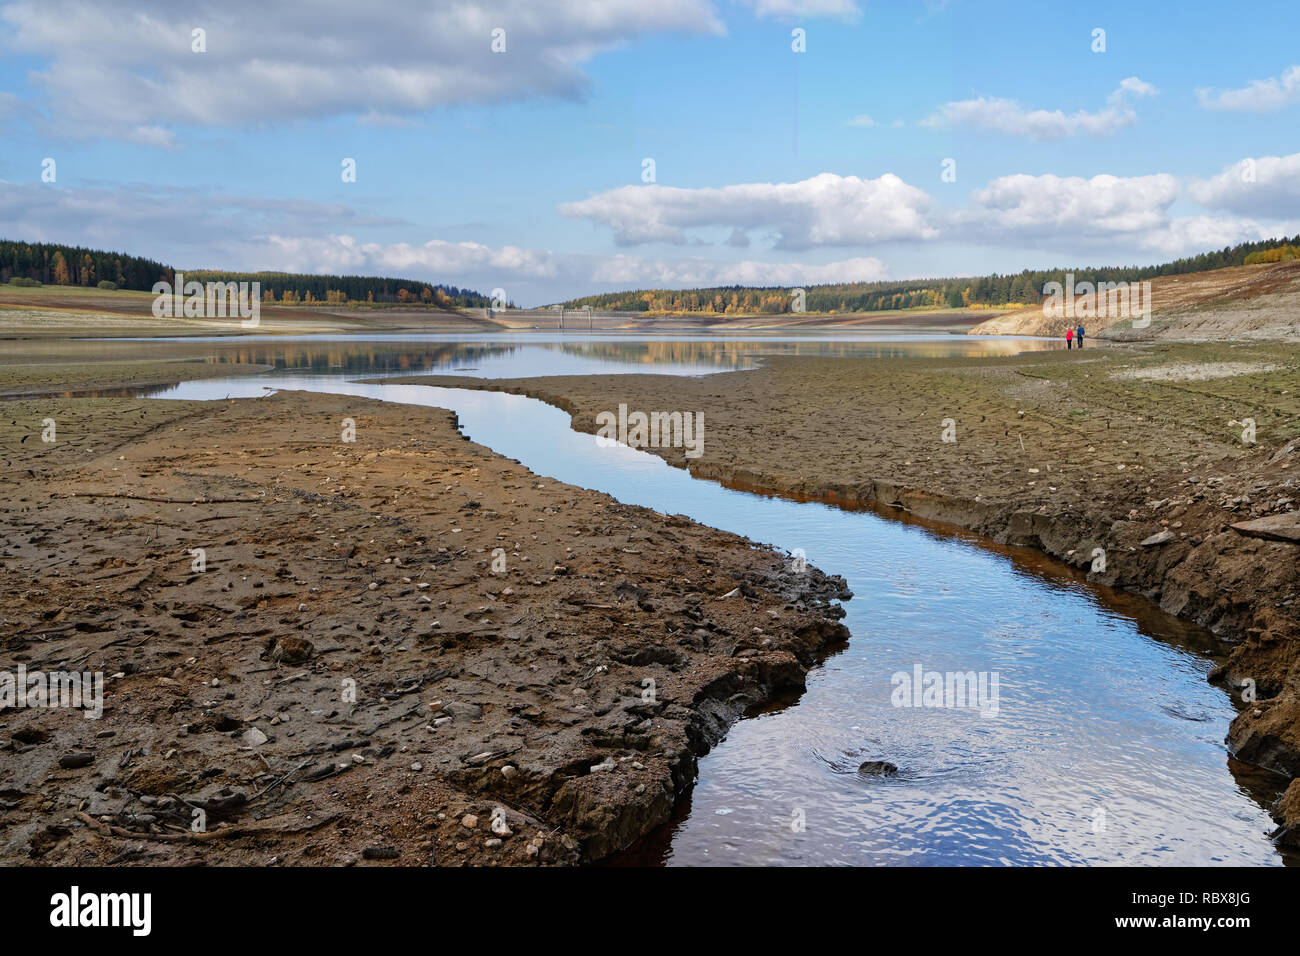 View to the dam wall of a dam with low water level, the dryness is clearly visible, consequence of the hot summer 2018 - Location: Germany, Saxony - Stock Image